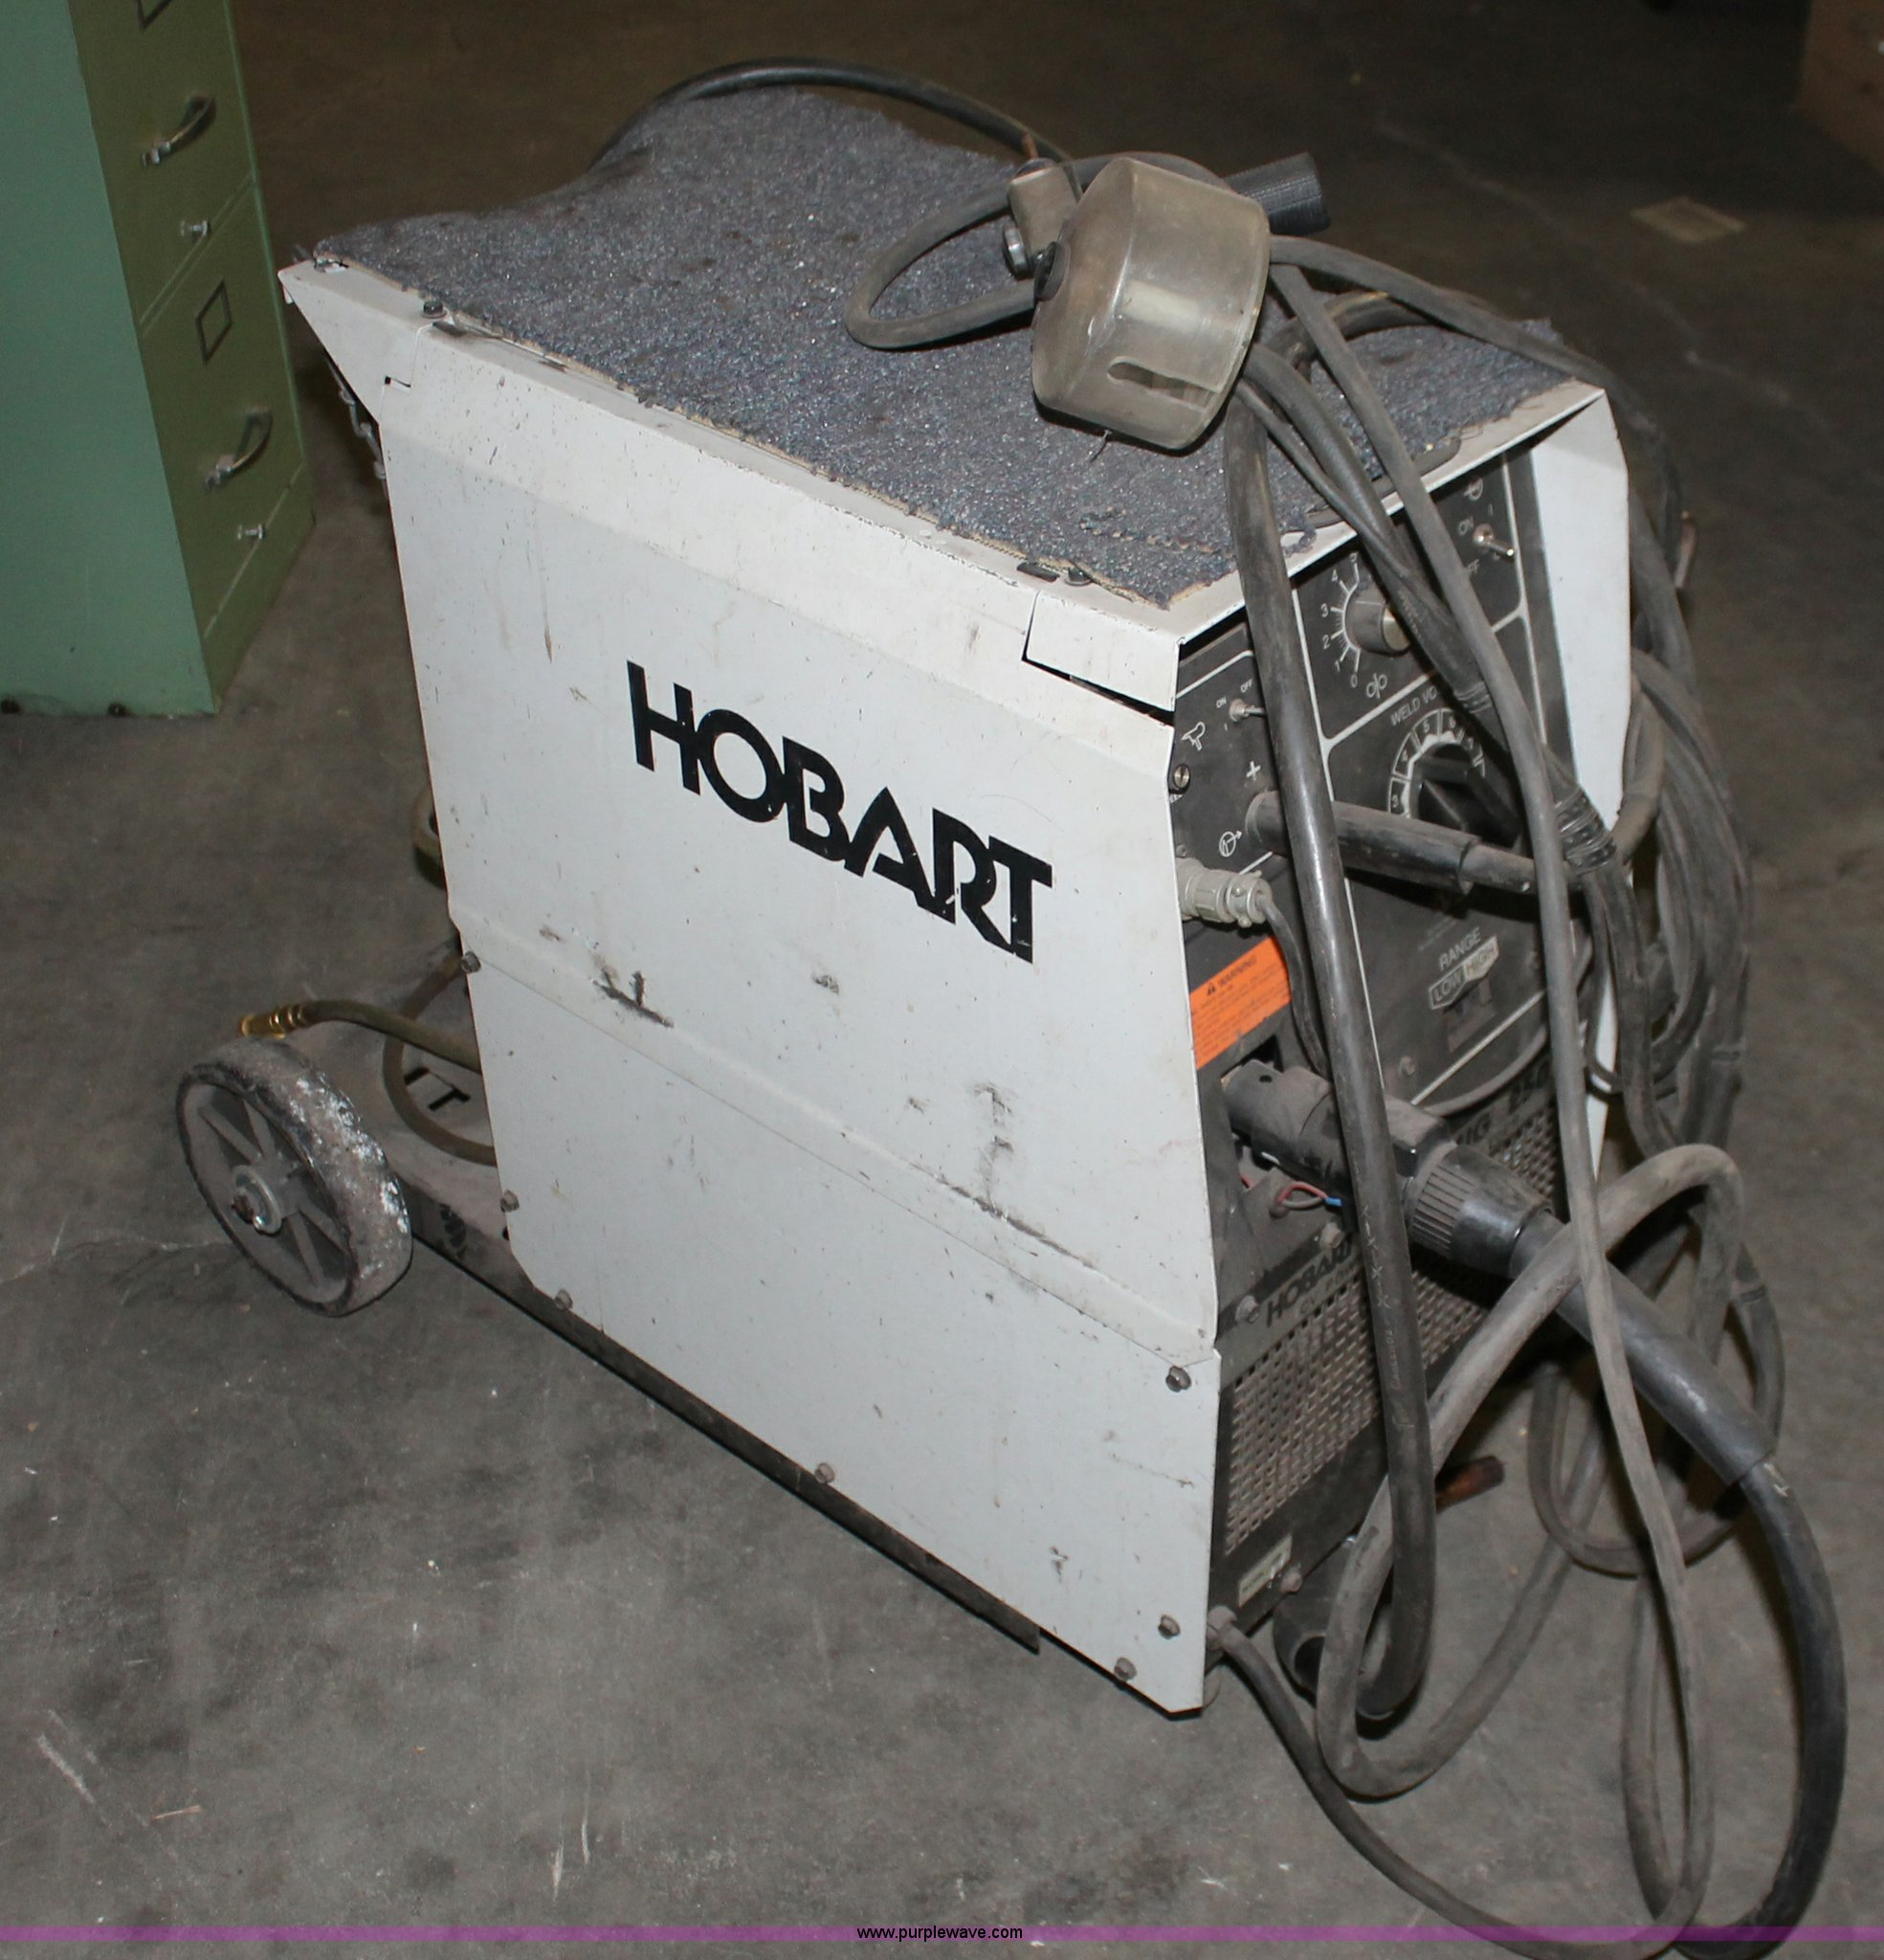 Hobart Beta Mig 250 Cv Power Source Wire Feed Welder Item Wiring Diagram Full Size In New Window